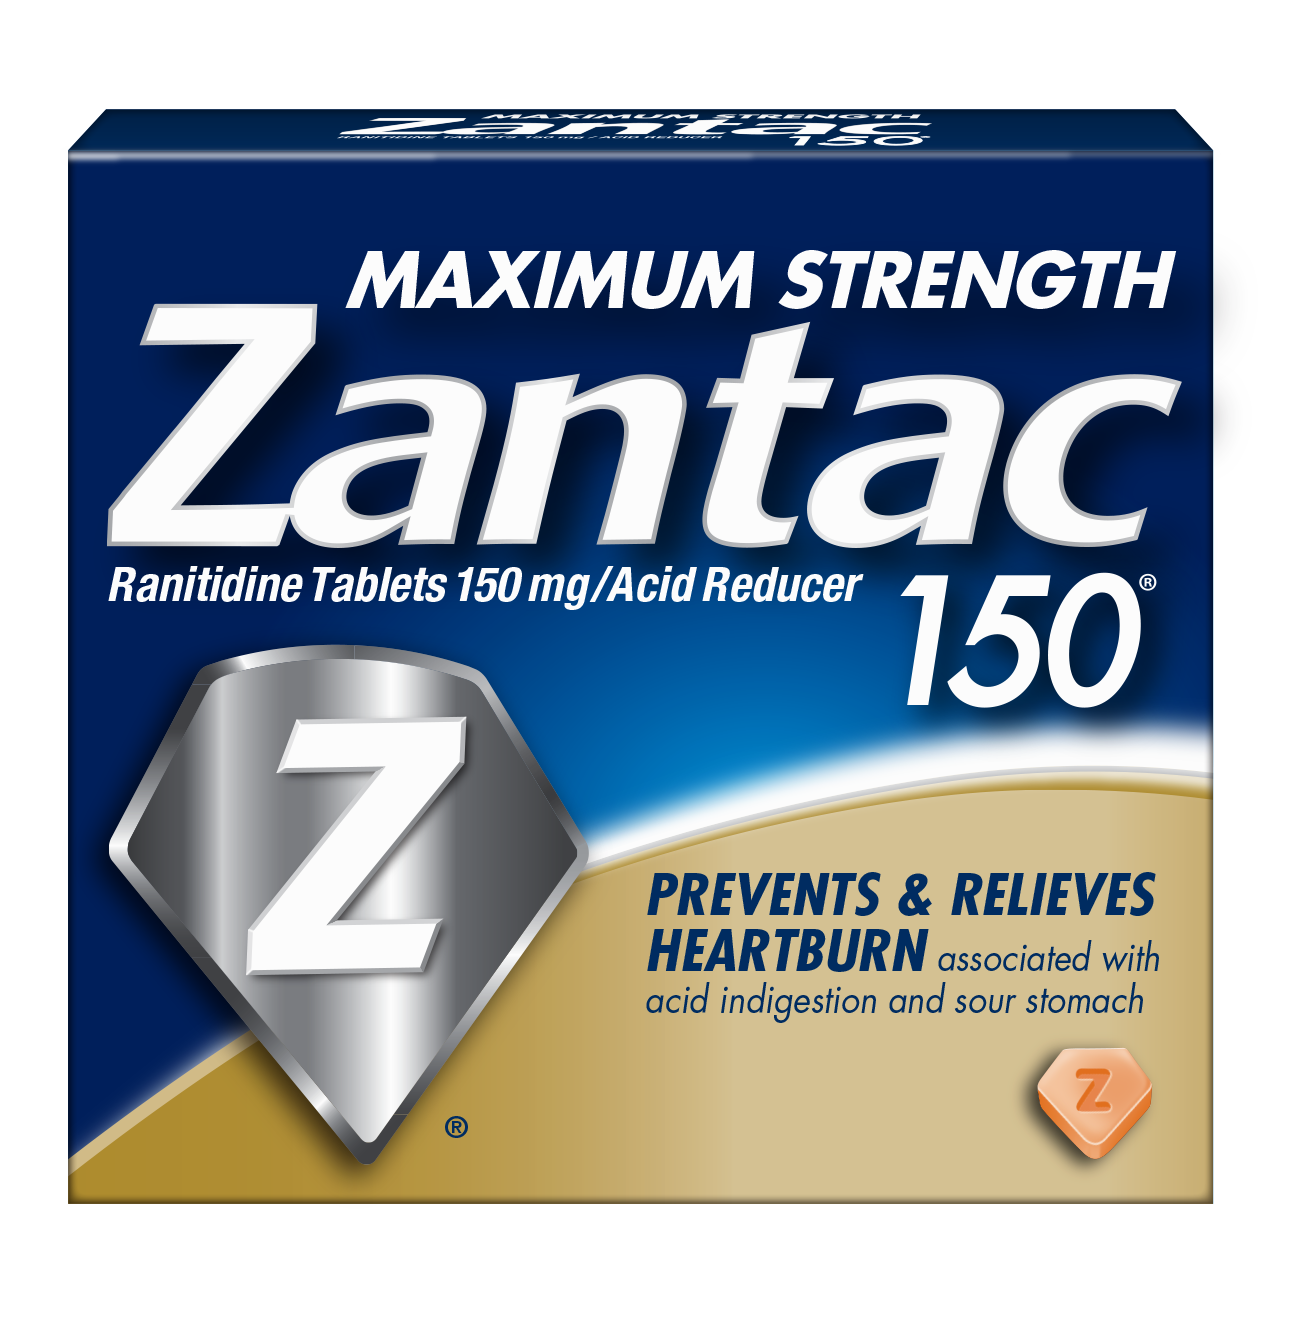 Pill transparent zantac. Promotion rebate offers